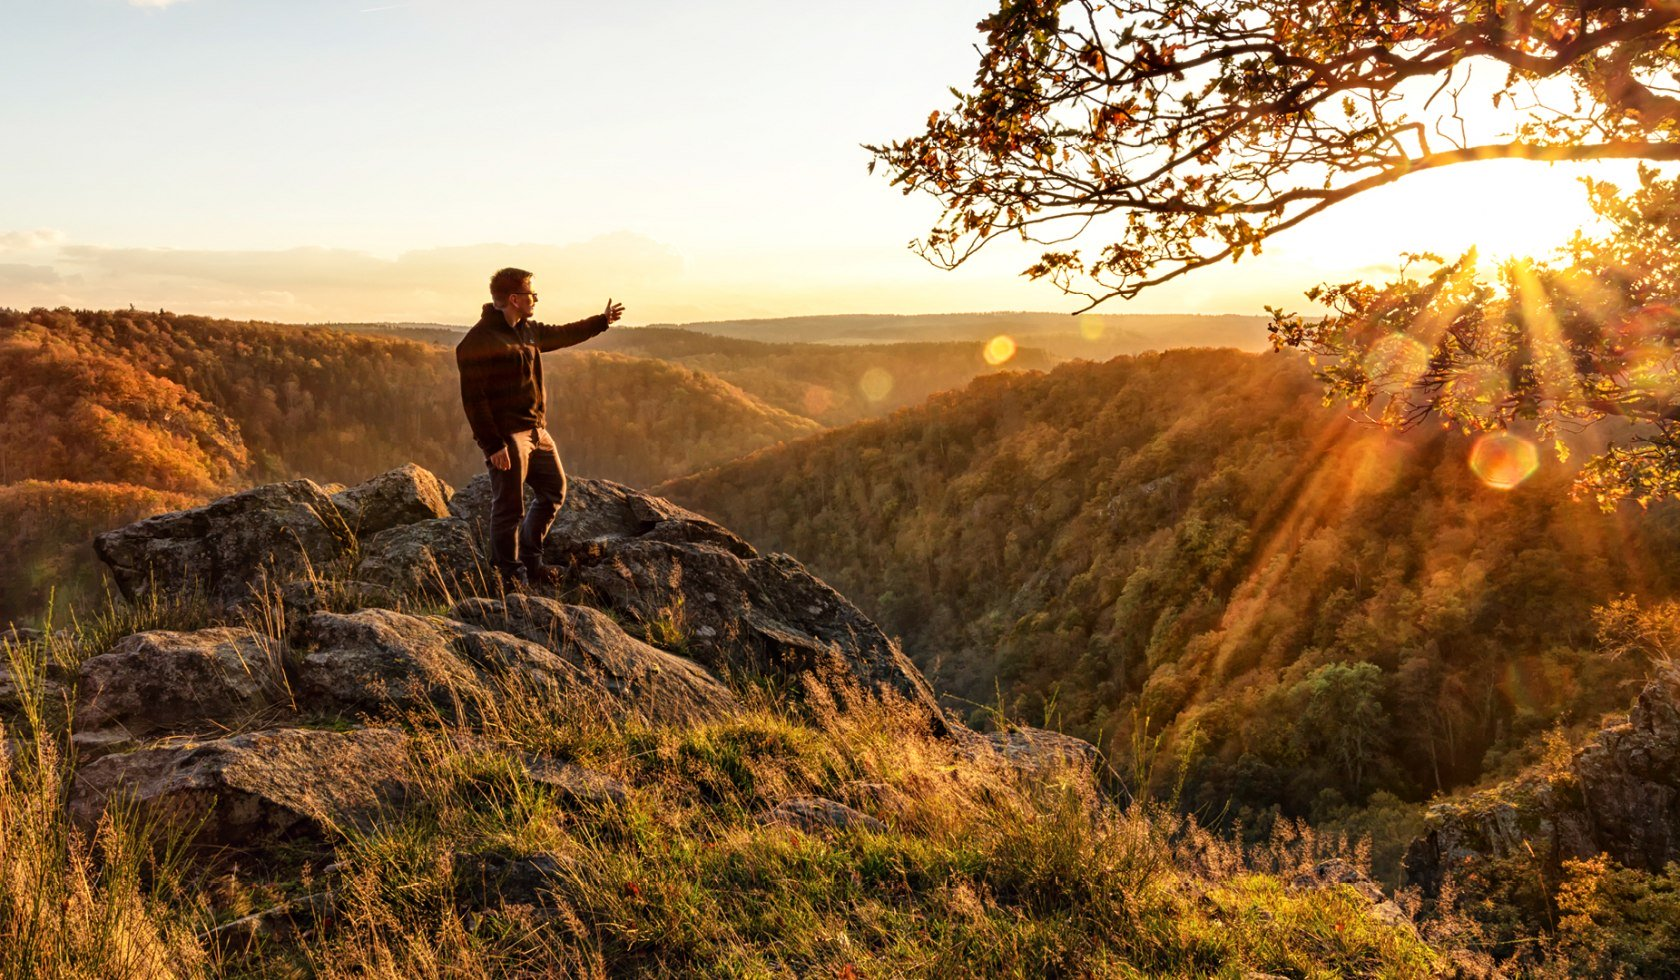 Man stands on mountain and stretches his arm out to the valley